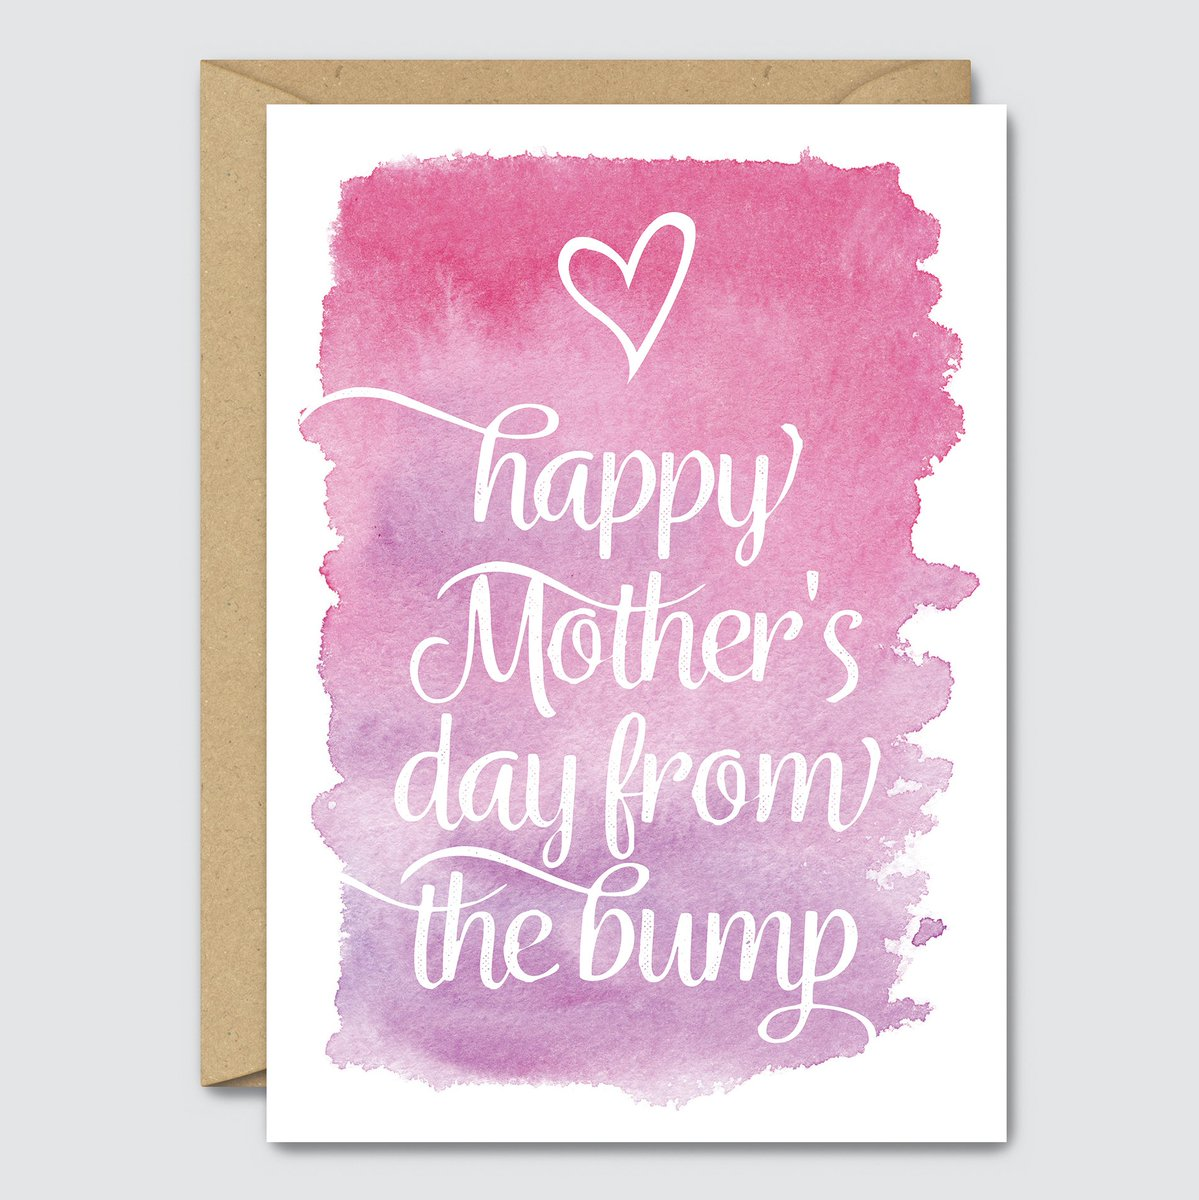 Blue Beryl On Twitter Witty Blunt And Blue Mothers Day Cards At